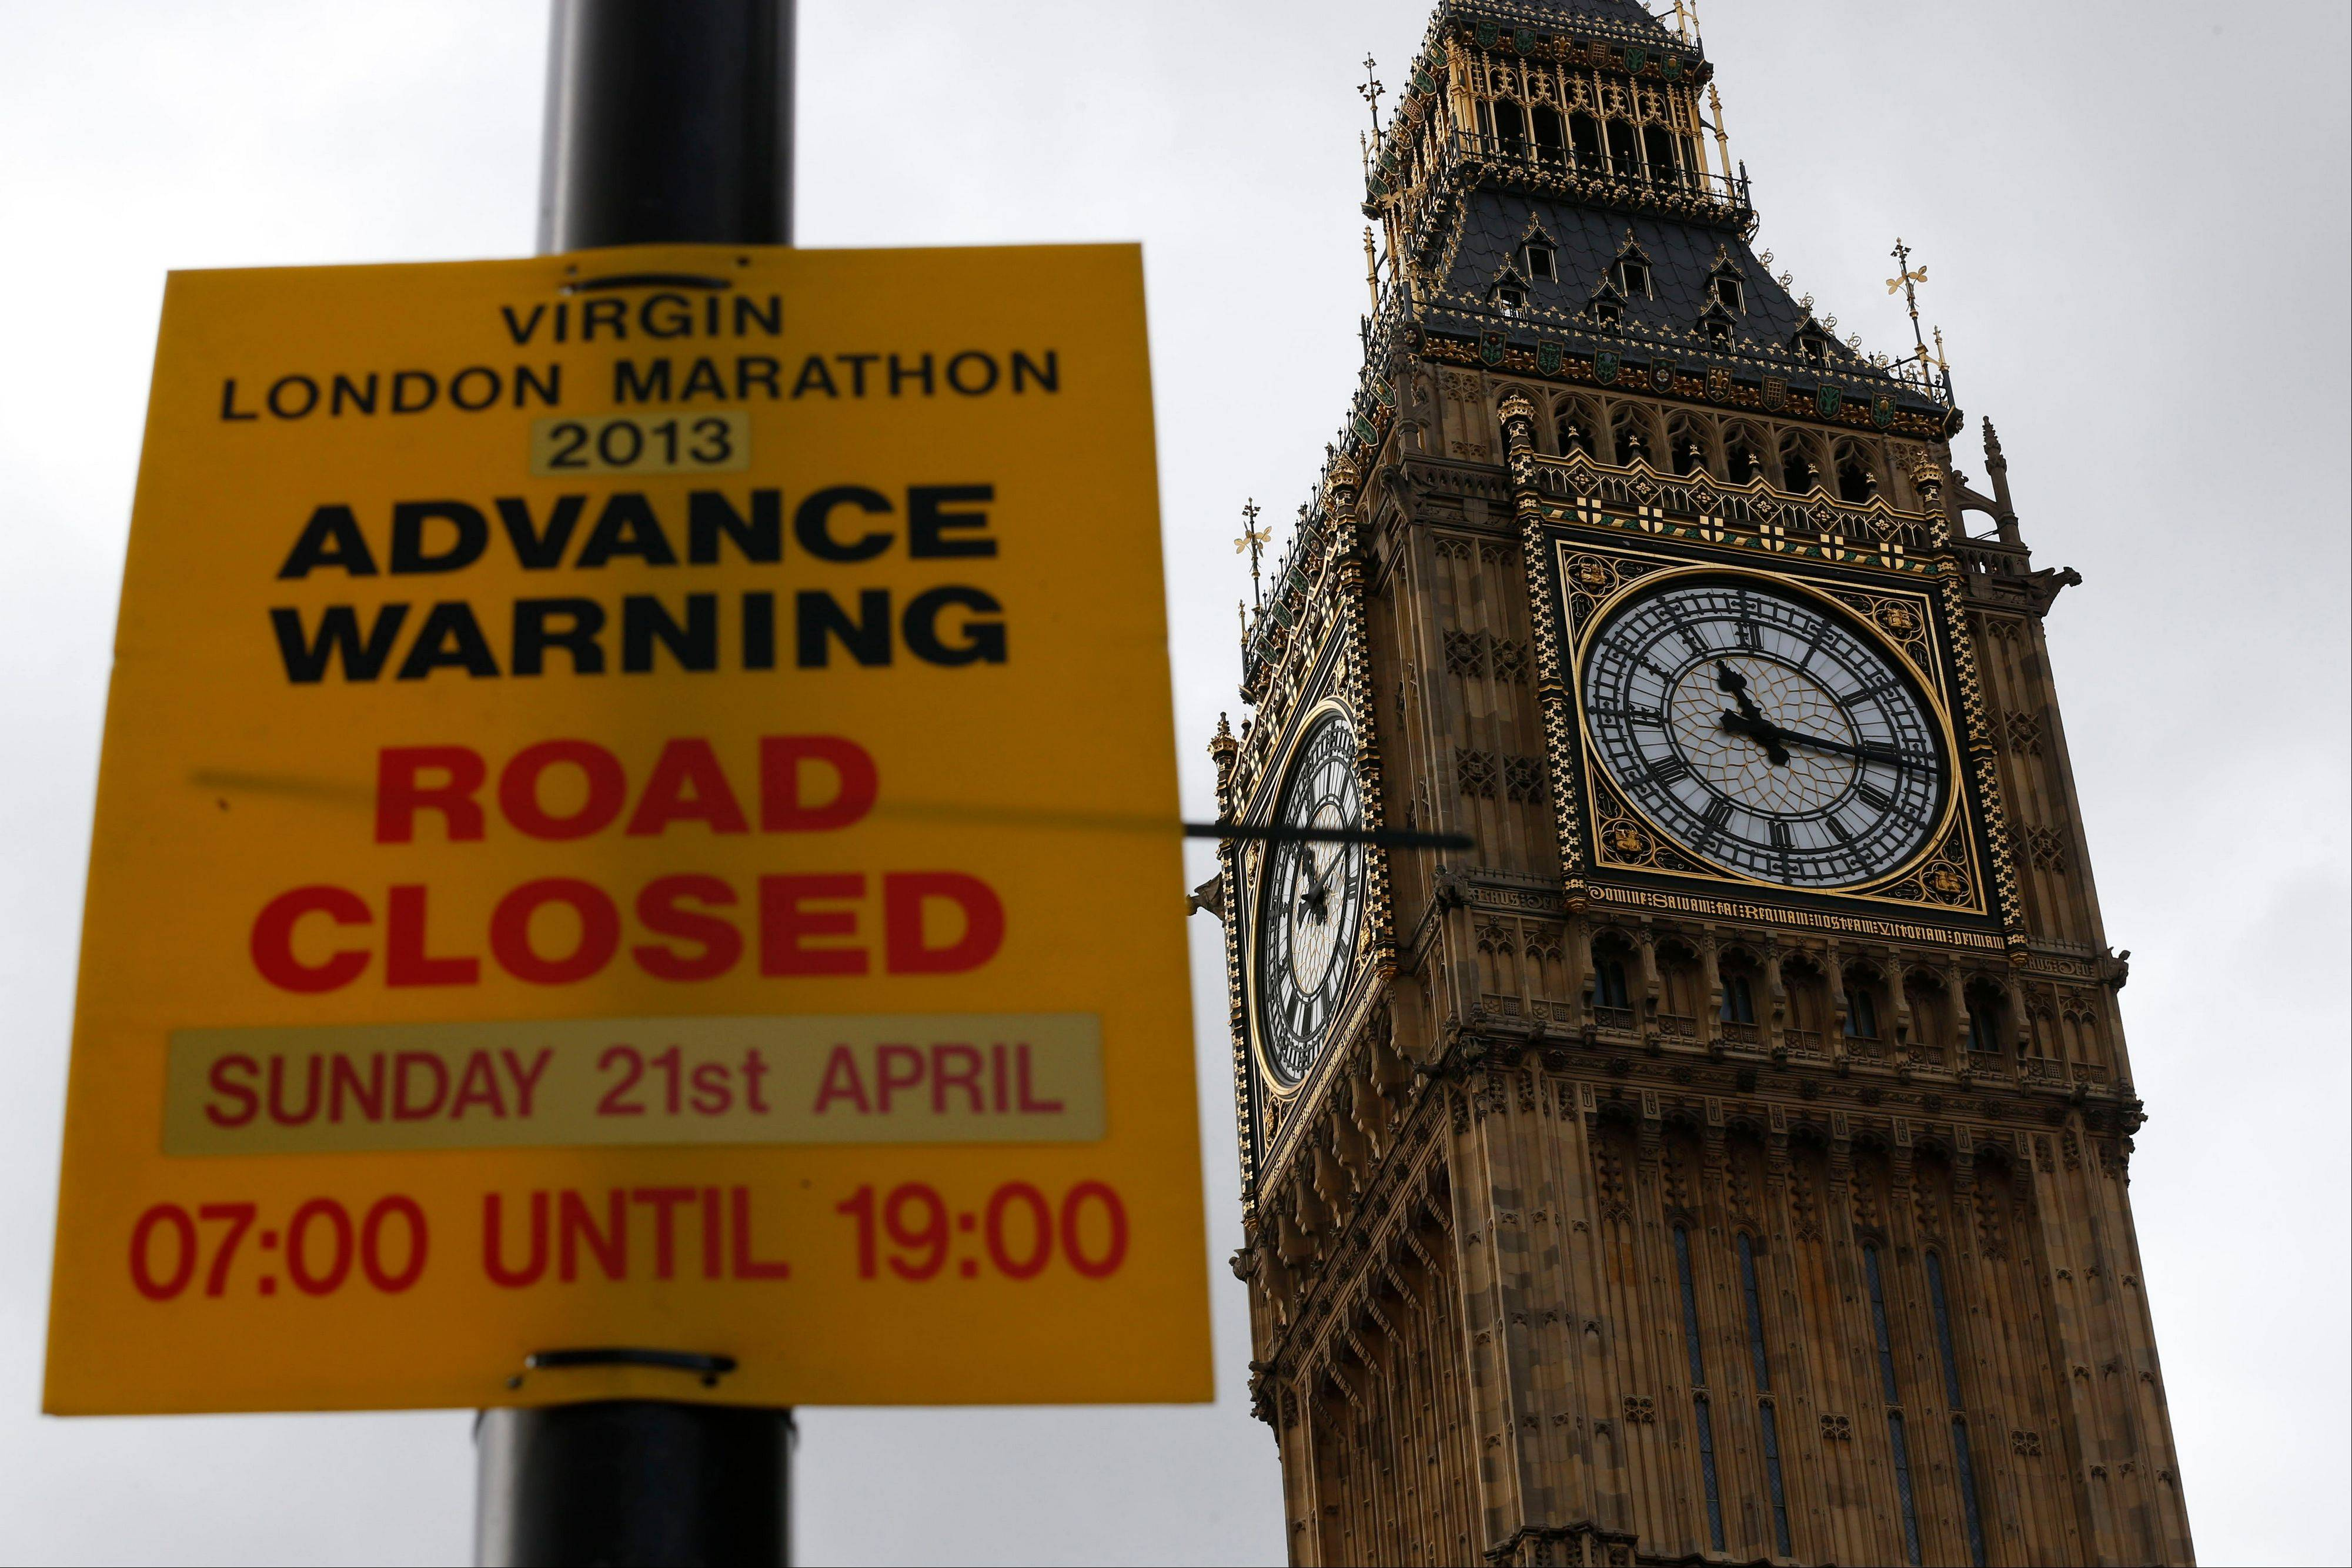 Back dropped by Big Ben, a warning sign for road closures at the forthcoming London Marathon is displayed along the marathon route in London, Tuesday, April 16, 2013. British police are reviewing security plans for Sunday's London Marathon, the next major international marathon, because of the bombs that killed three people at the marathon in Boston Monday.